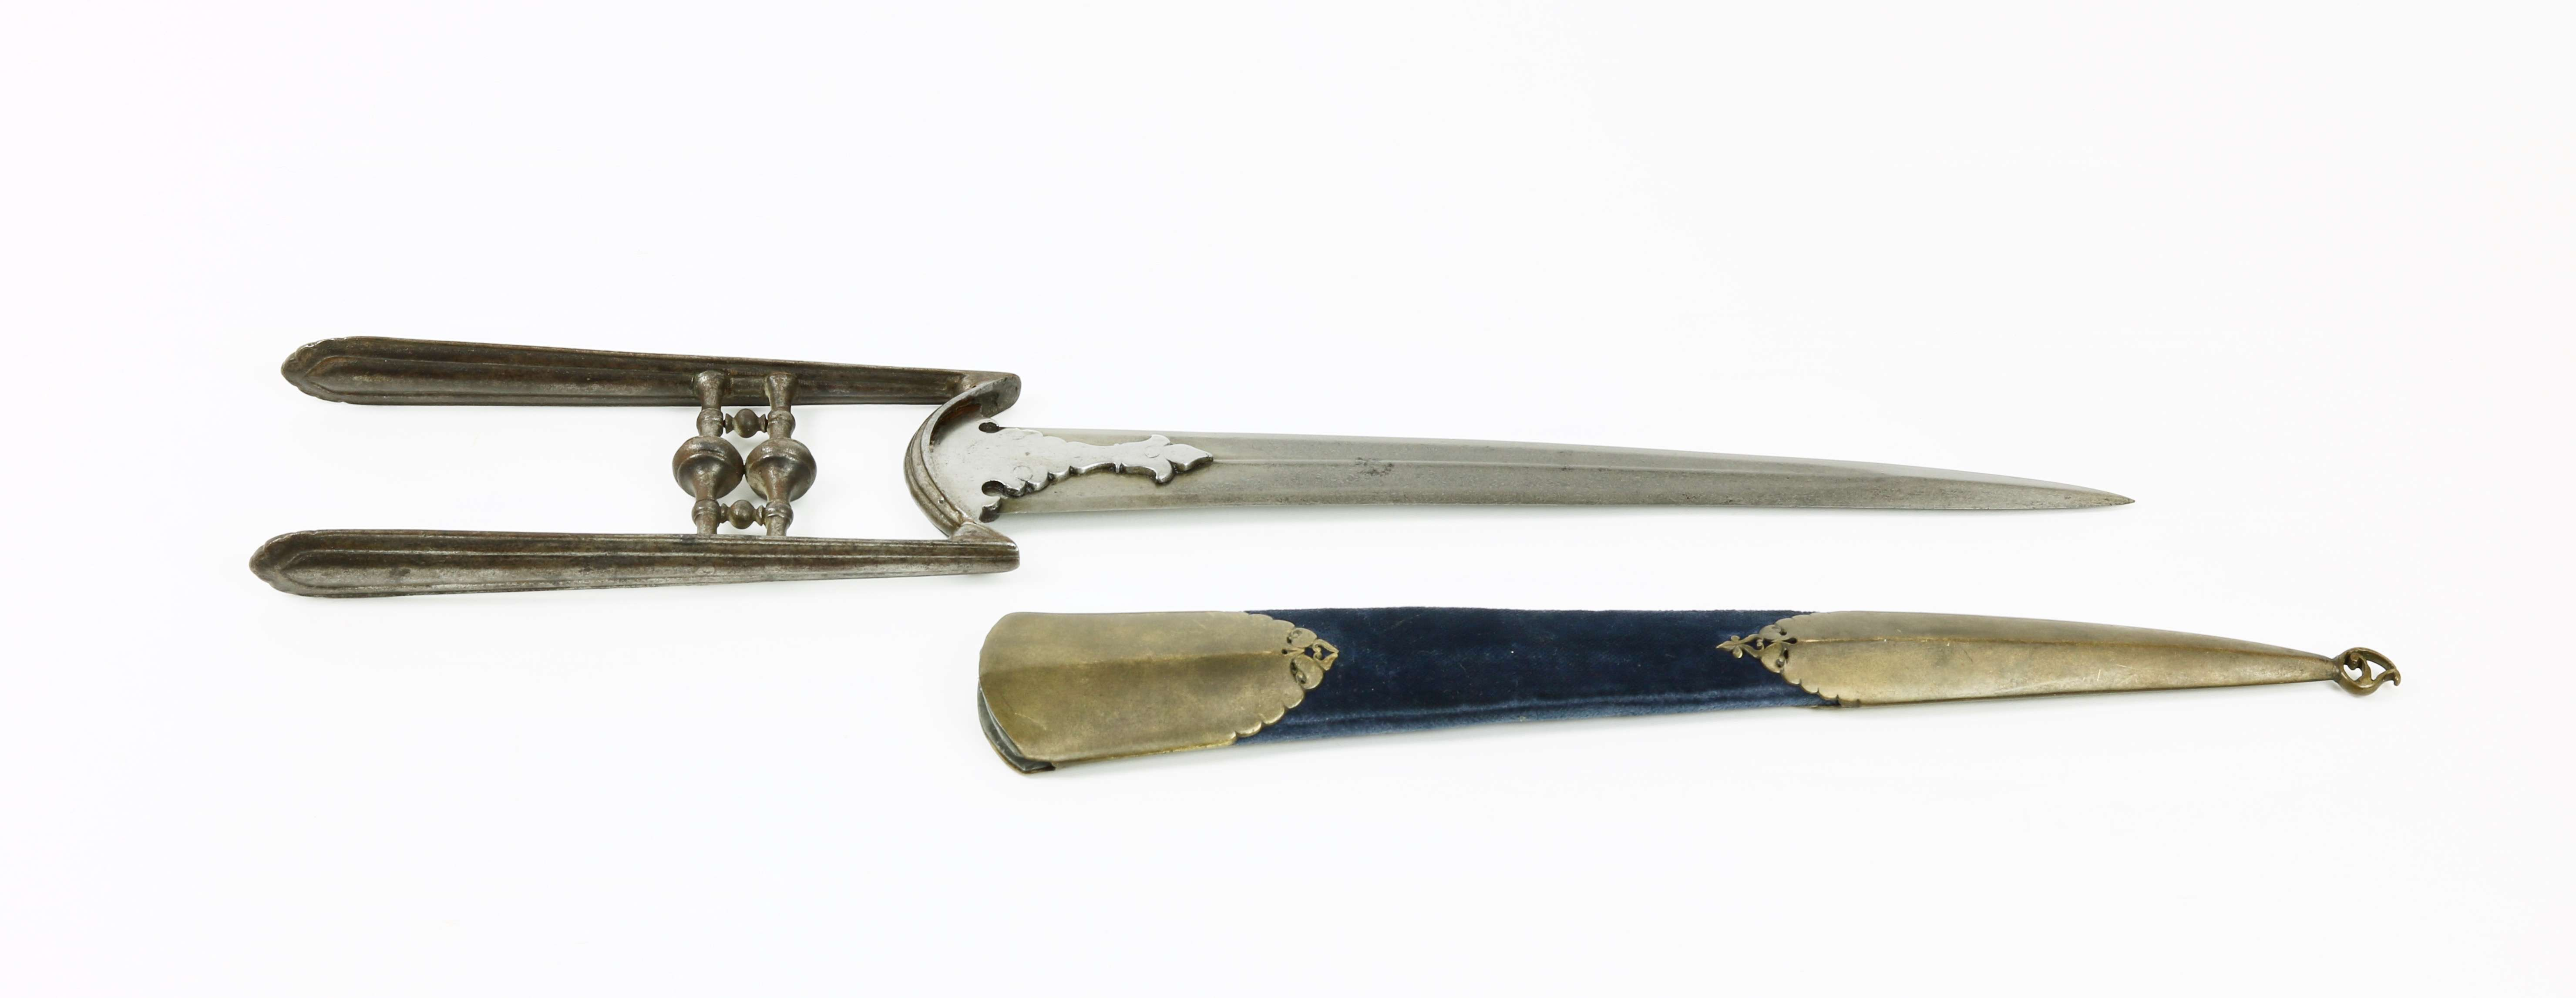 17th century South Indian katar with curved blade